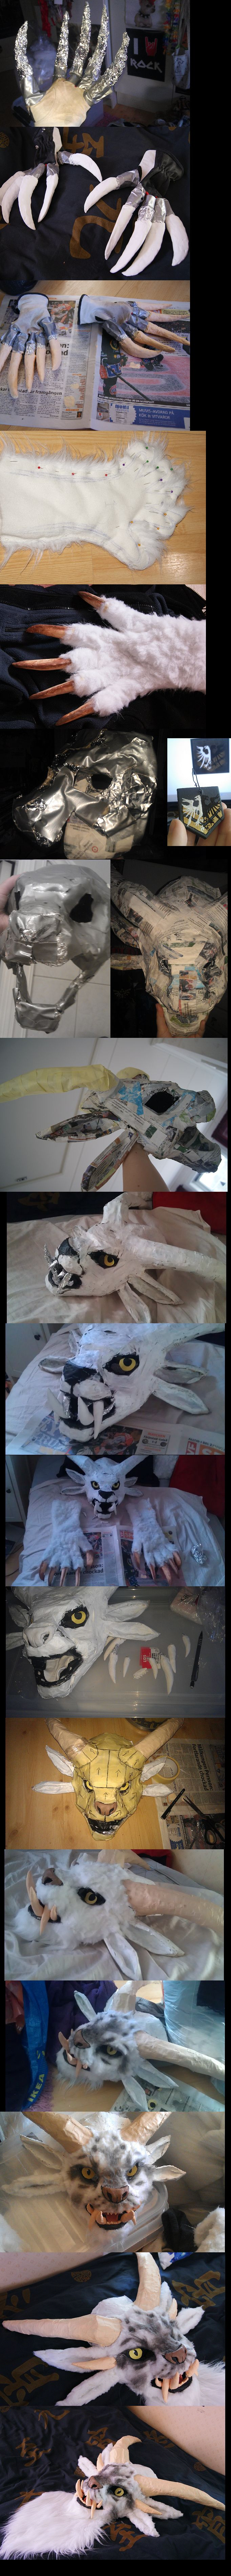 Charr Cosplay WIP by Lillgoban.deviantart.com on @deviantART